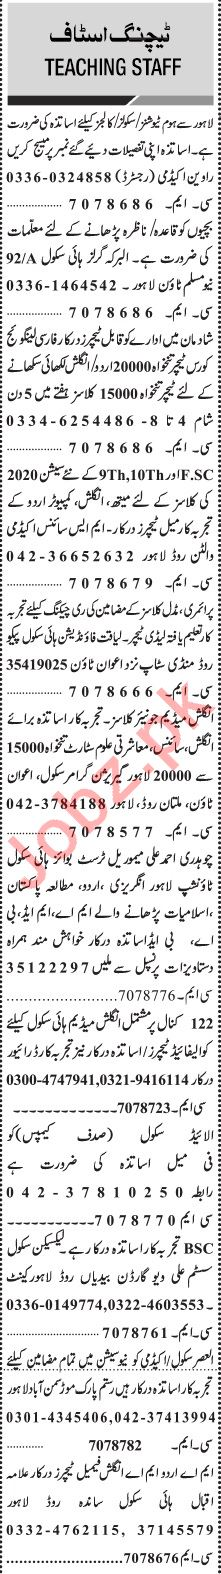 Jang Sunday Classified Ads 26 Jan 2020 for Teaching Staff